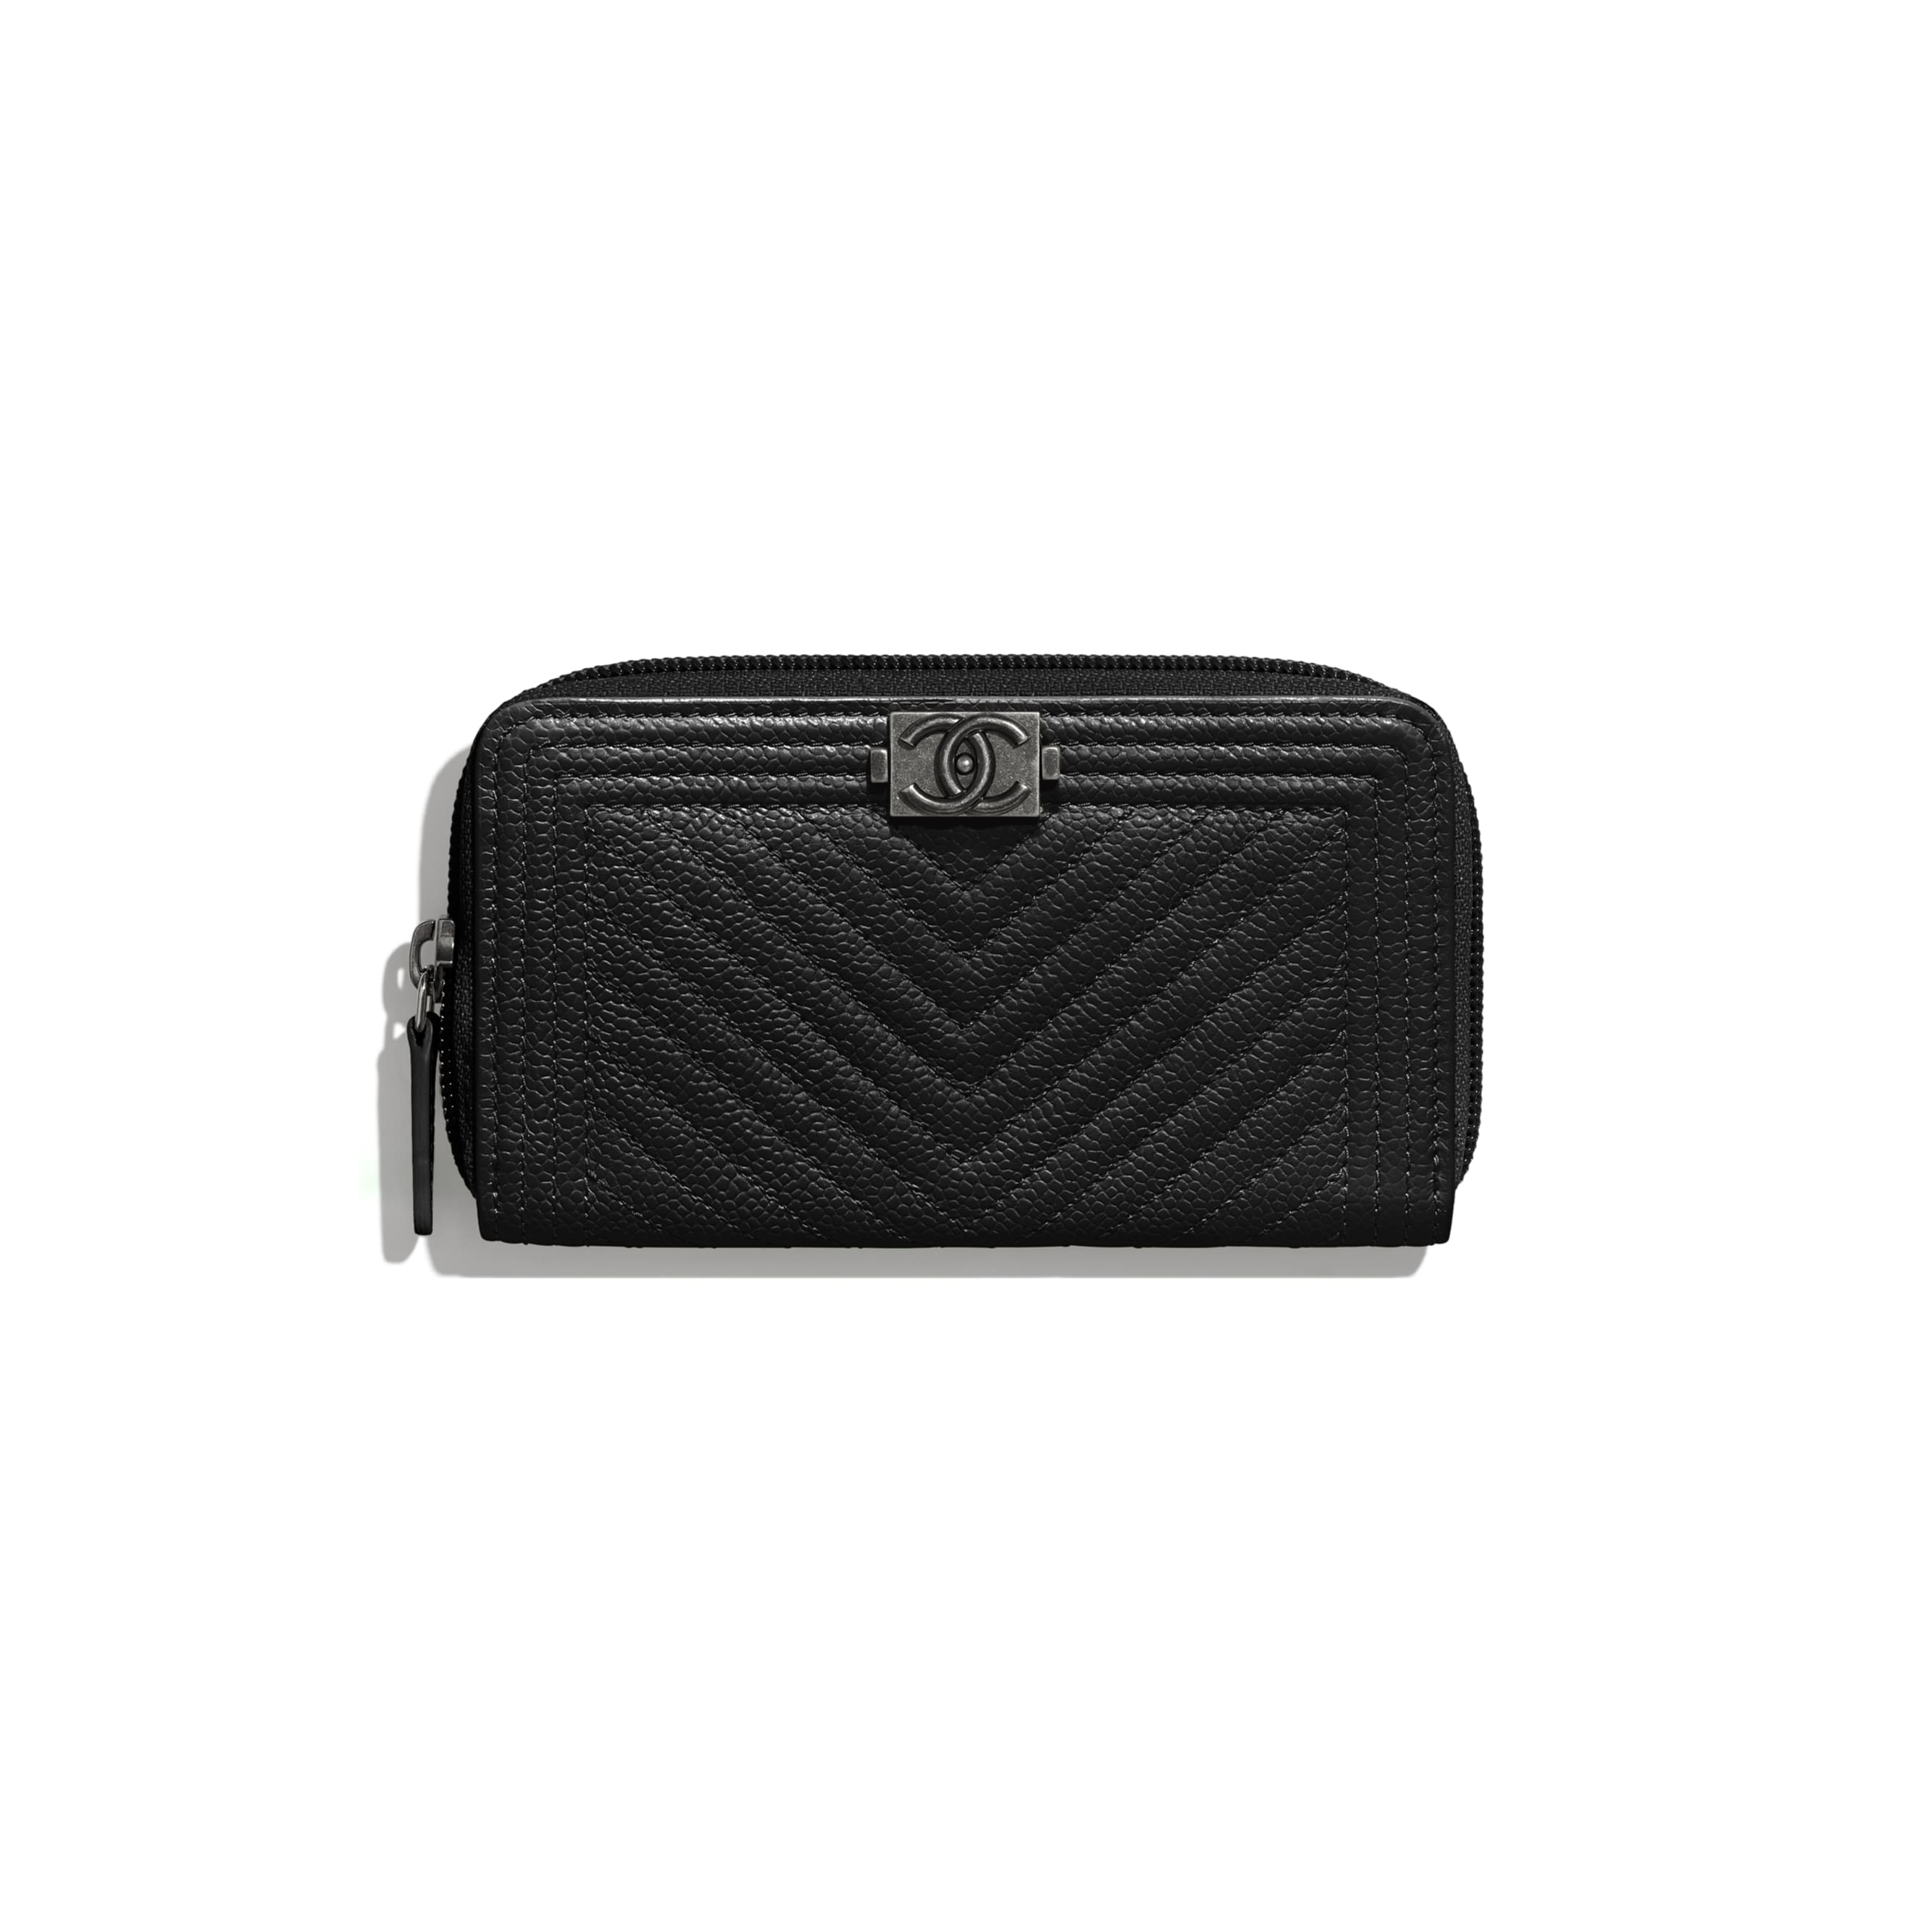 BOY CHANEL Zipped Wallet - Black - Grained Calfskin & Ruthenium-Finish Metal - CHANEL - Default view - see standard sized version